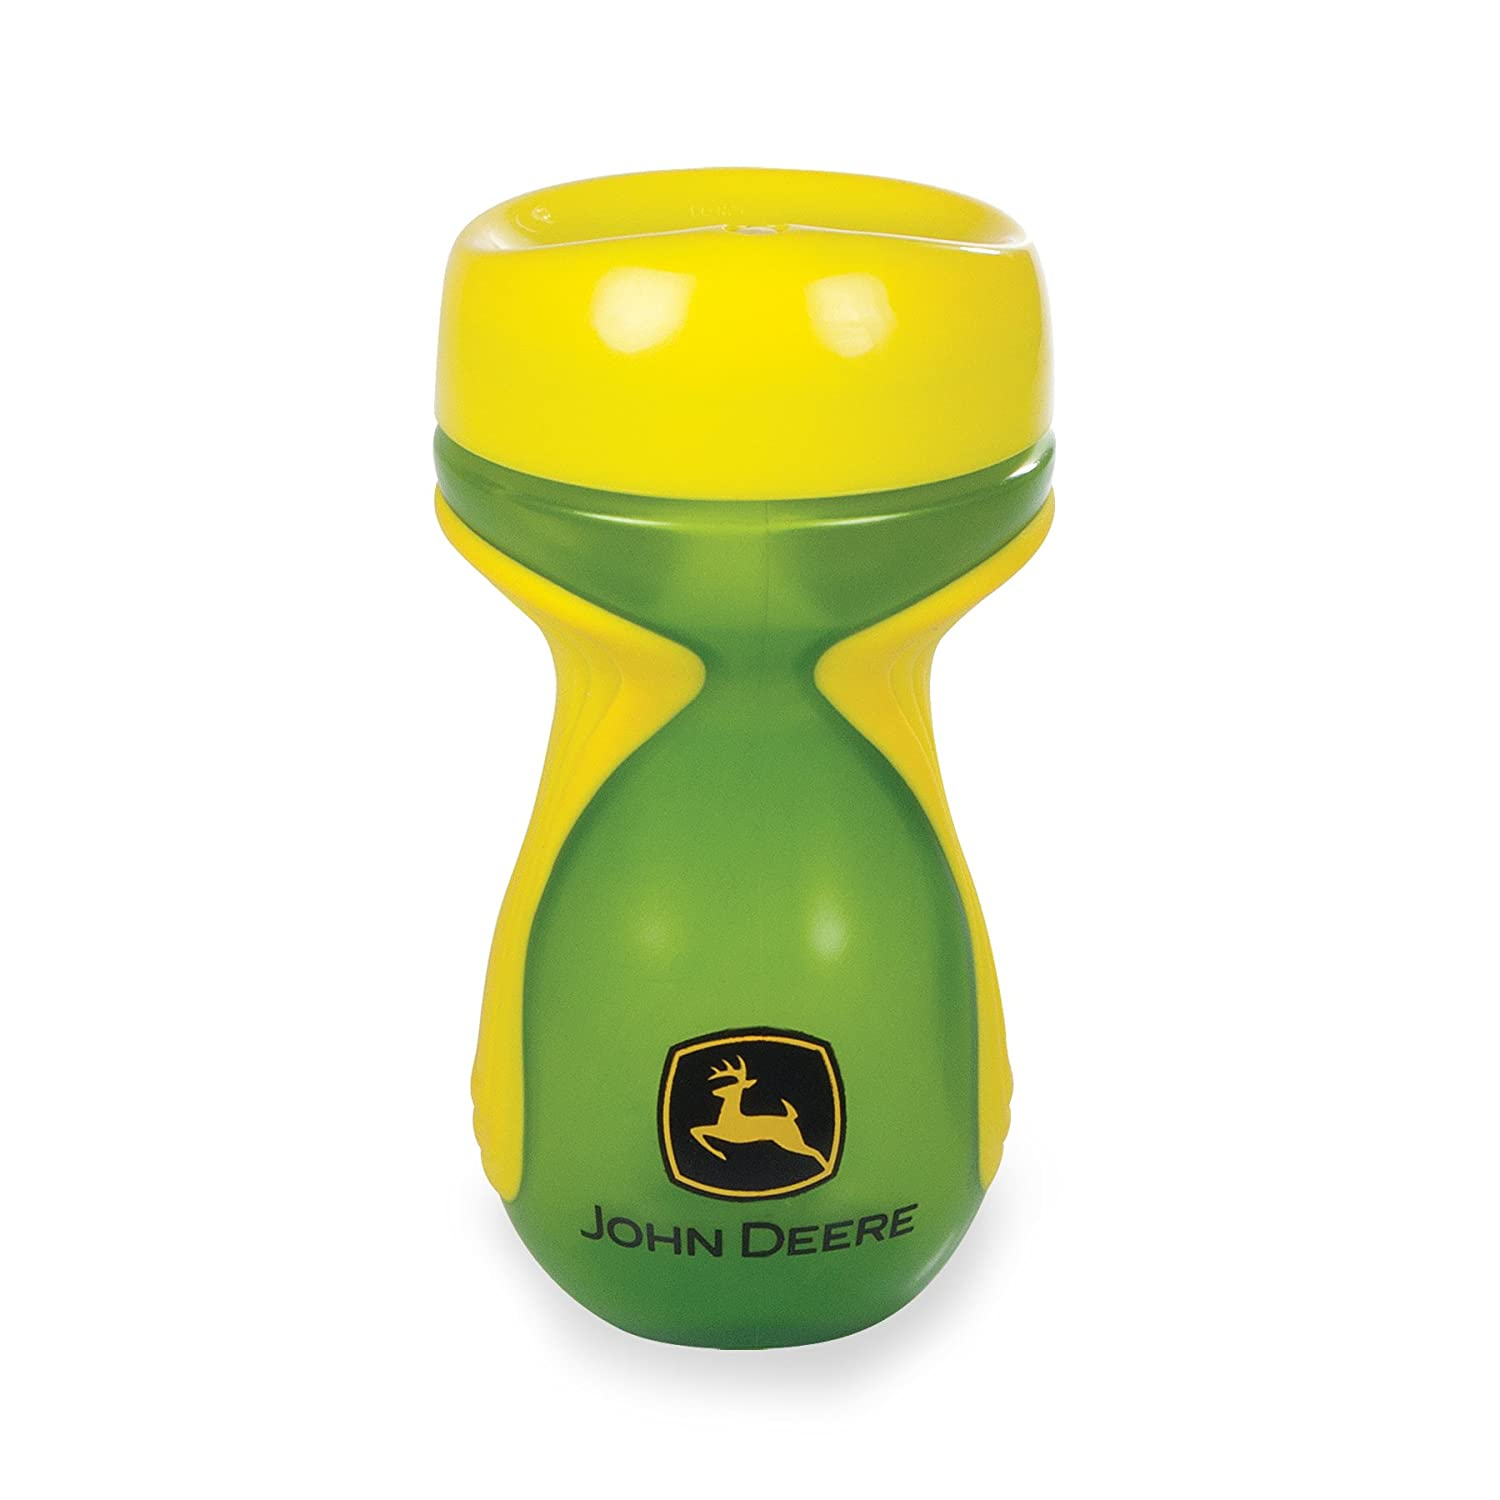 The First Years John Deere Sipper Spill-Proof Cup, 9 Oz. by The First Years   B00DDT1I1A